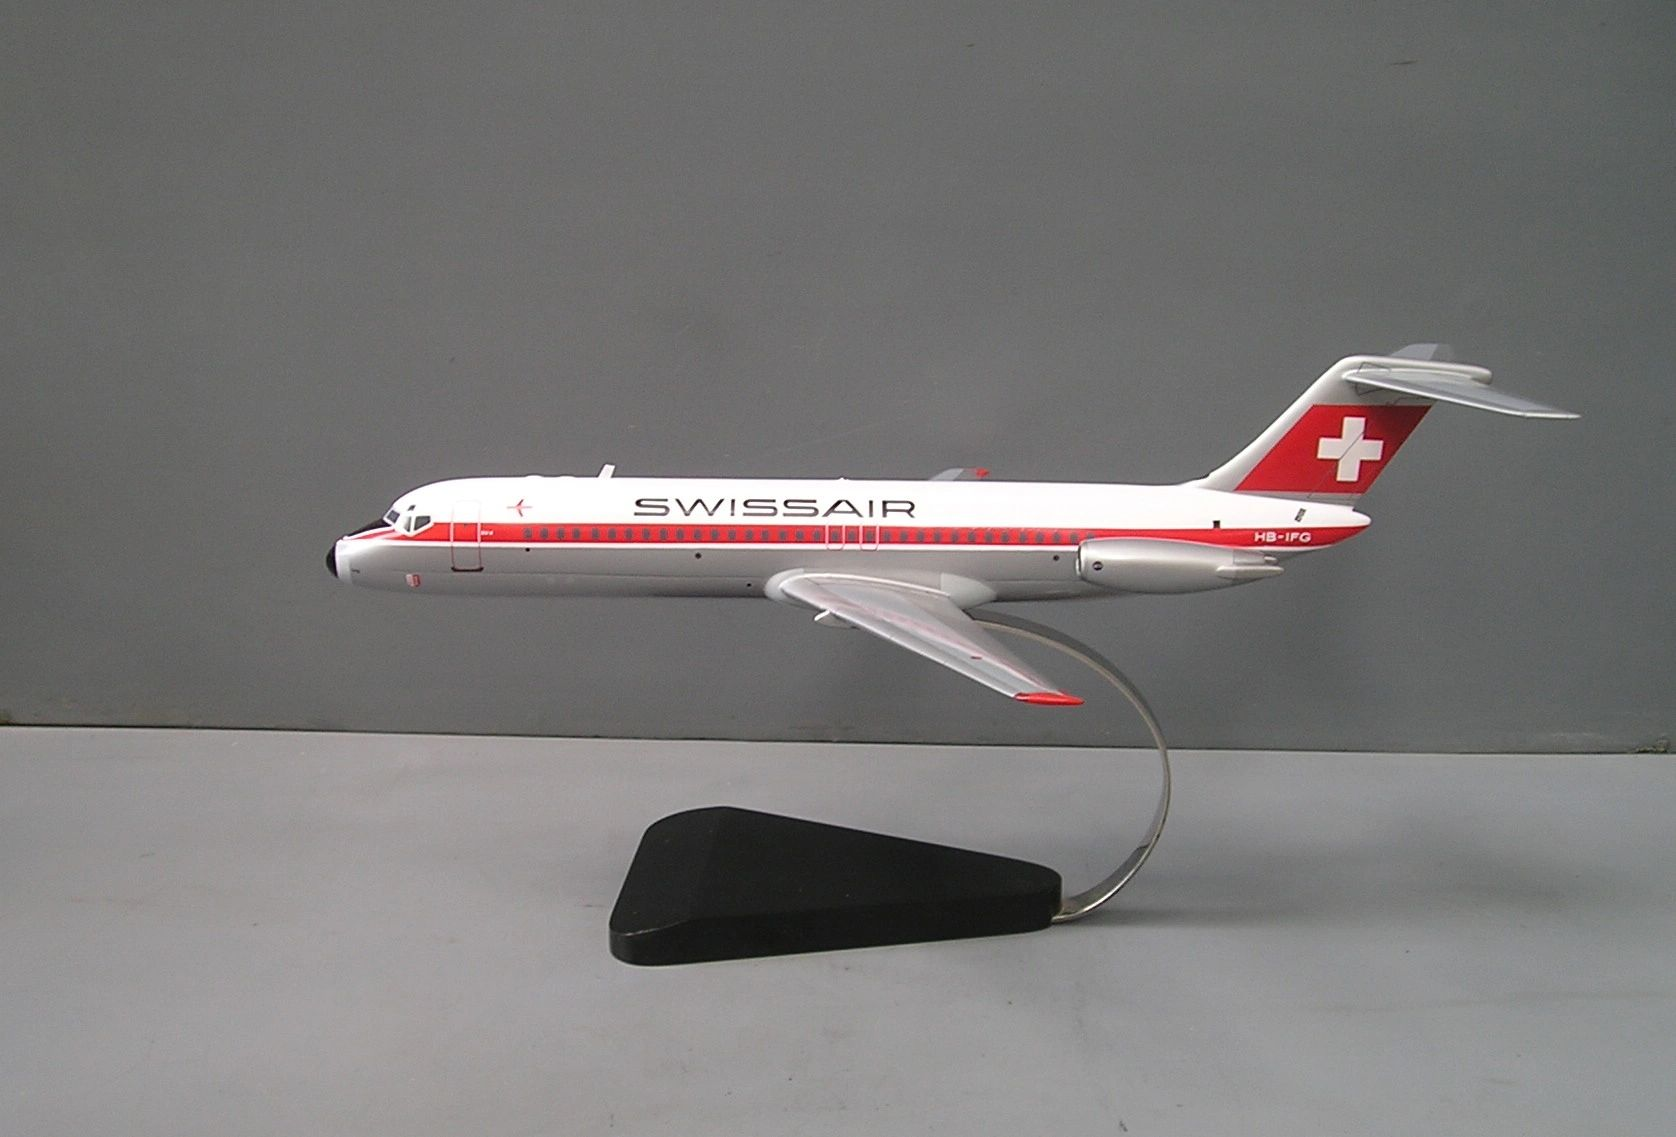 Swissair custom model